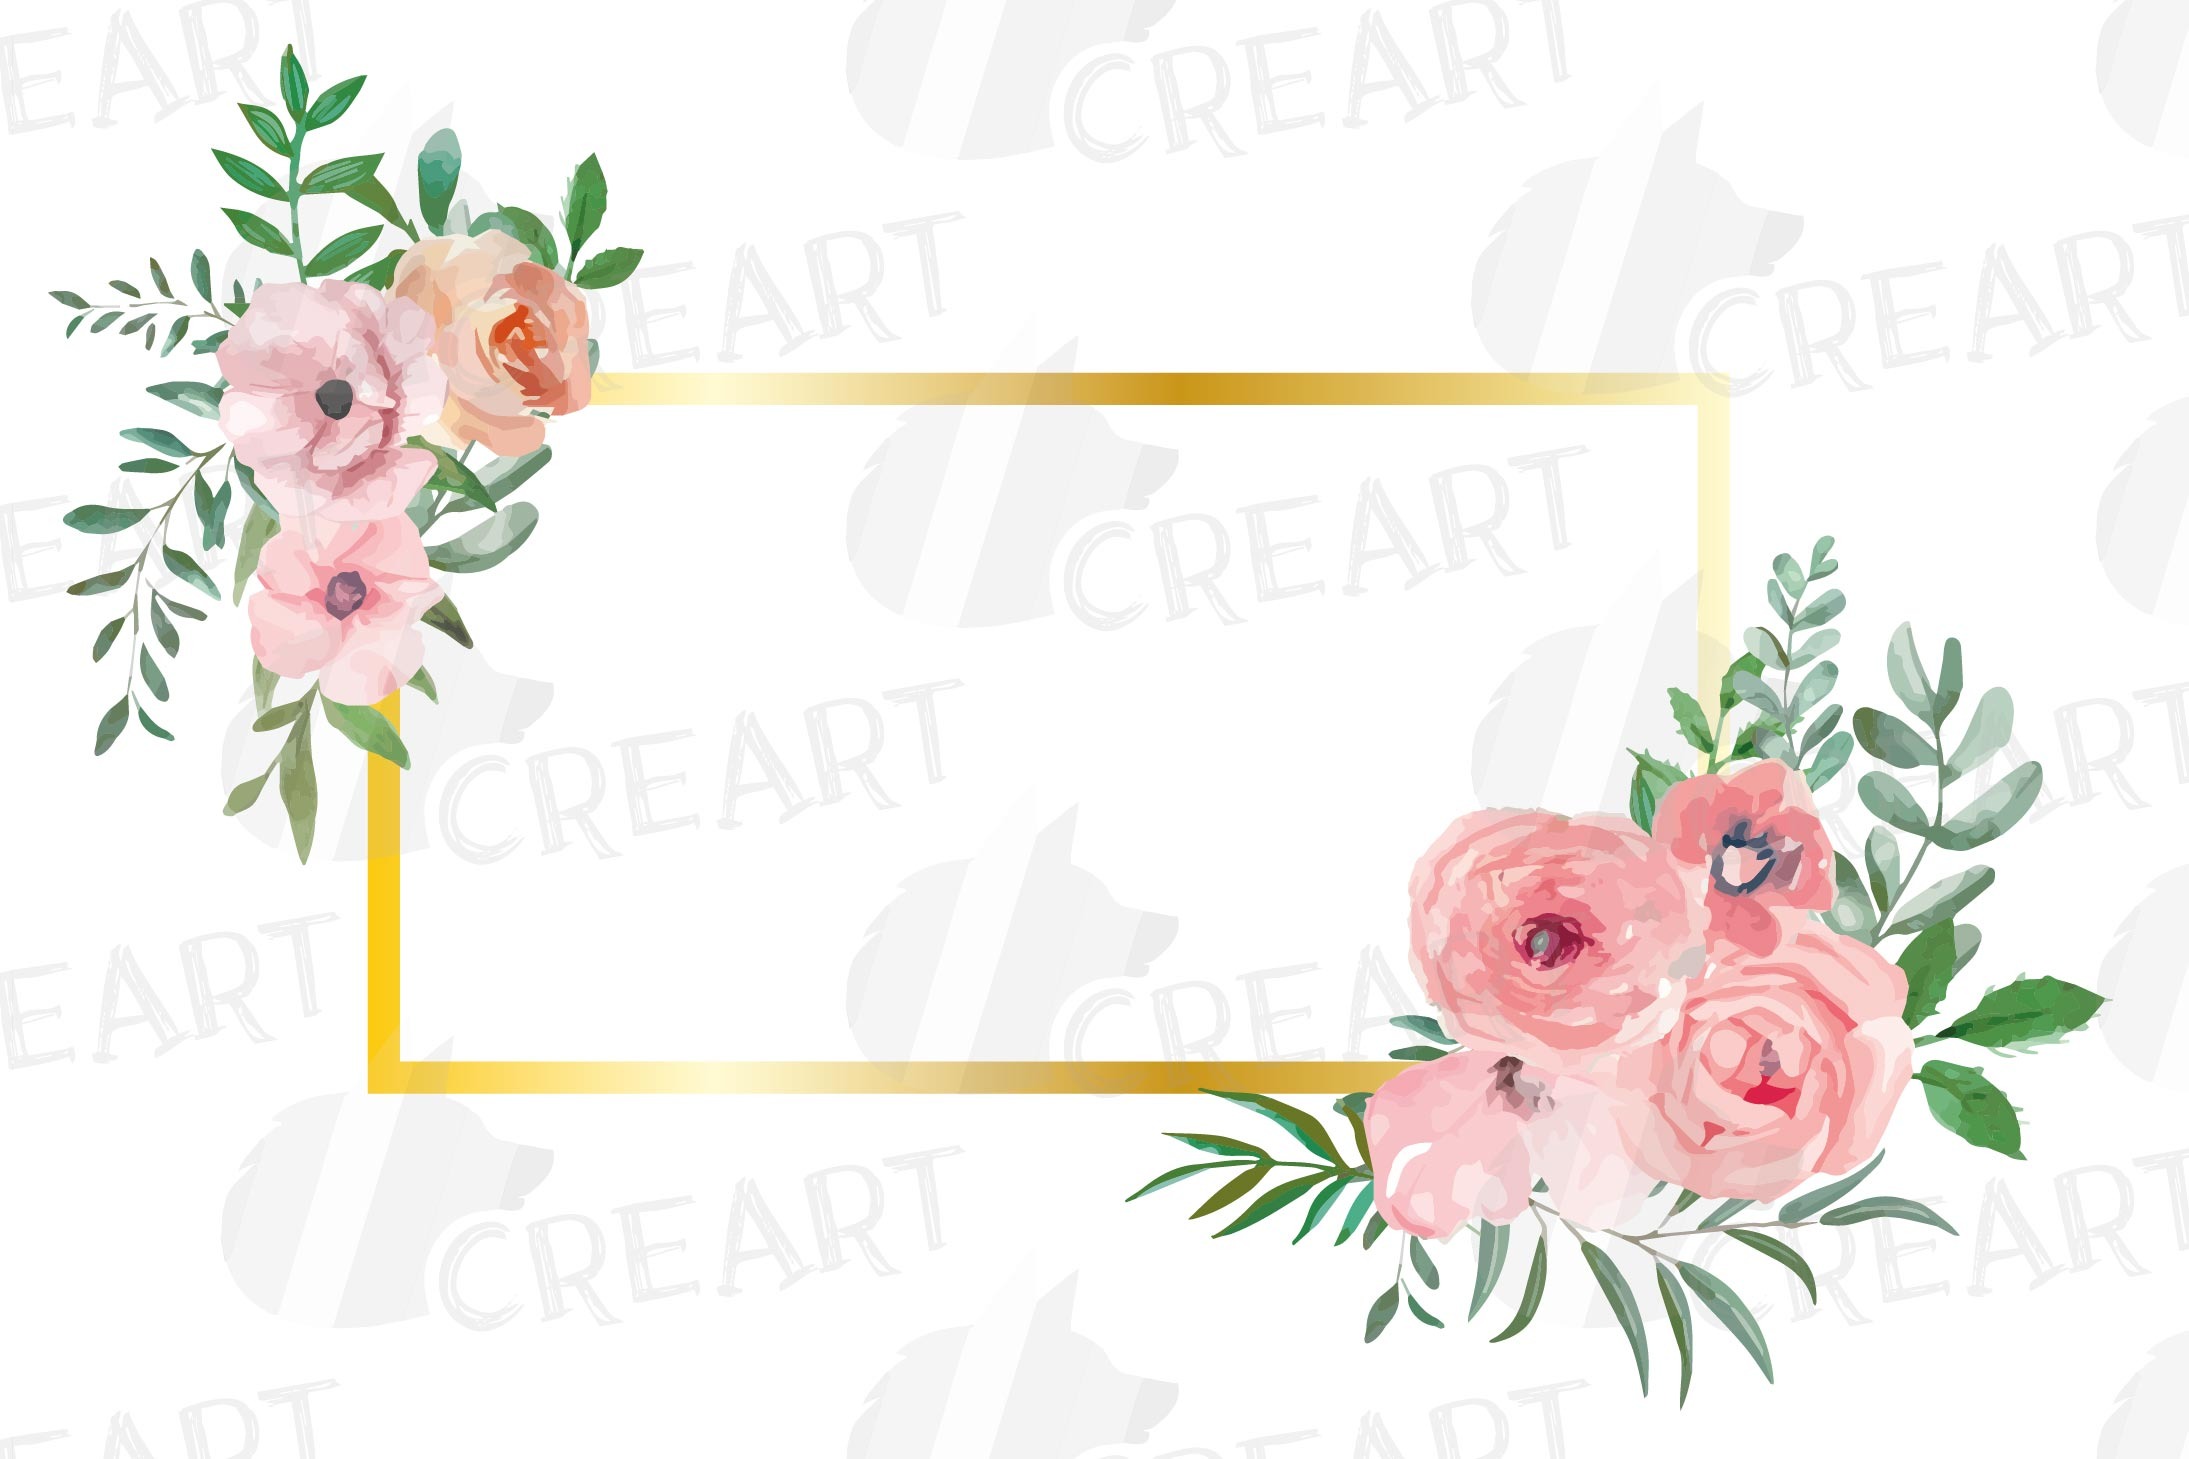 Blush watercolor floral wedding clip art, pink flowers leafs example image 7